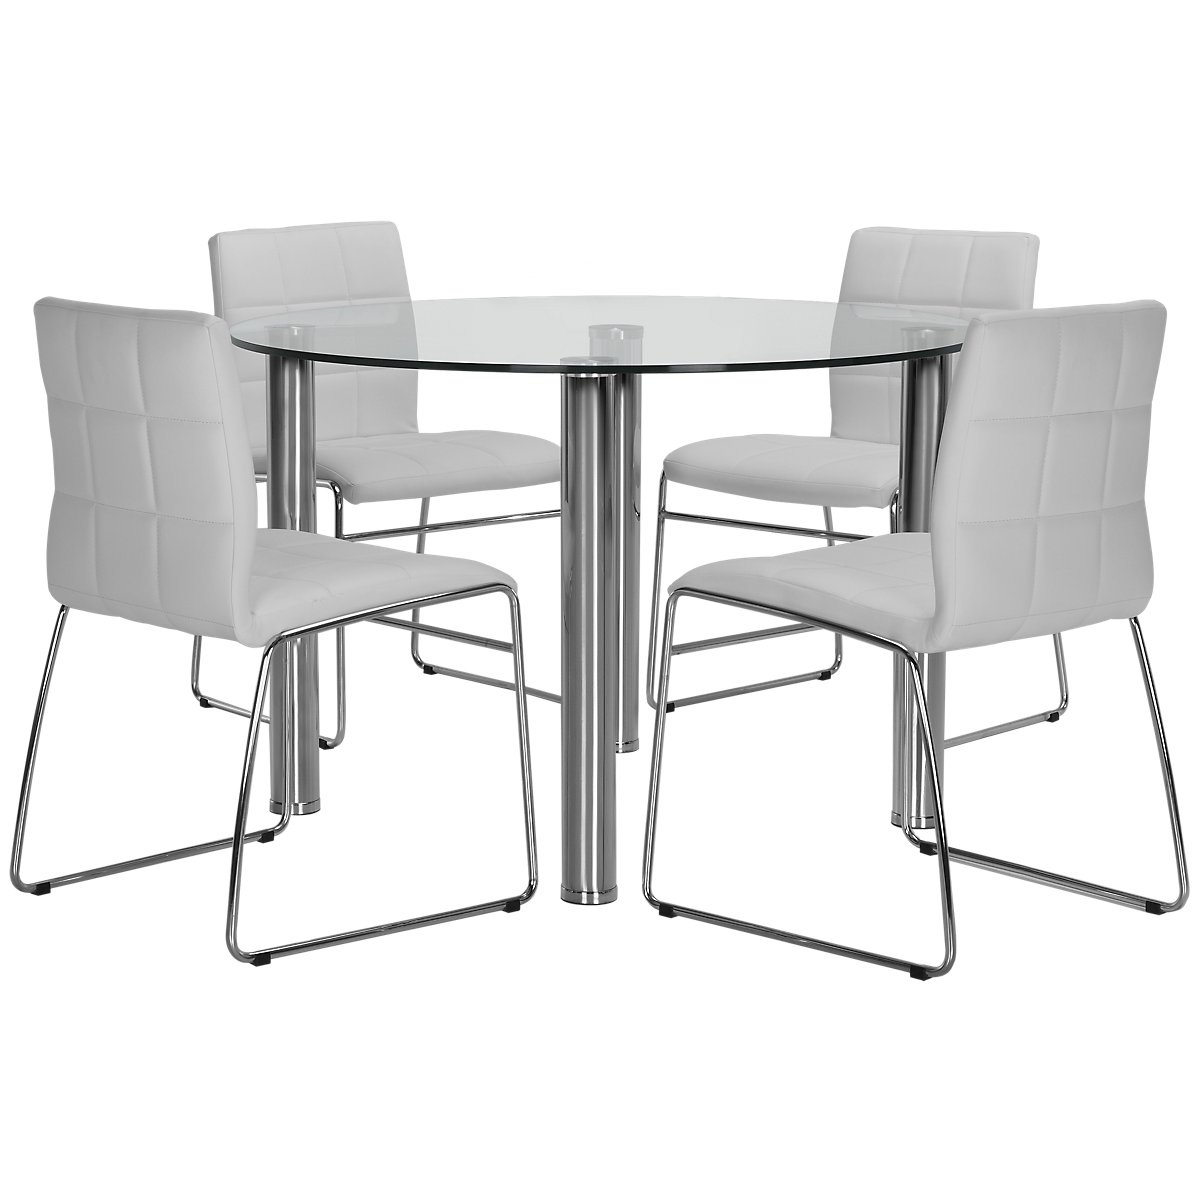 Napoli White Round Table & 4 Chairs